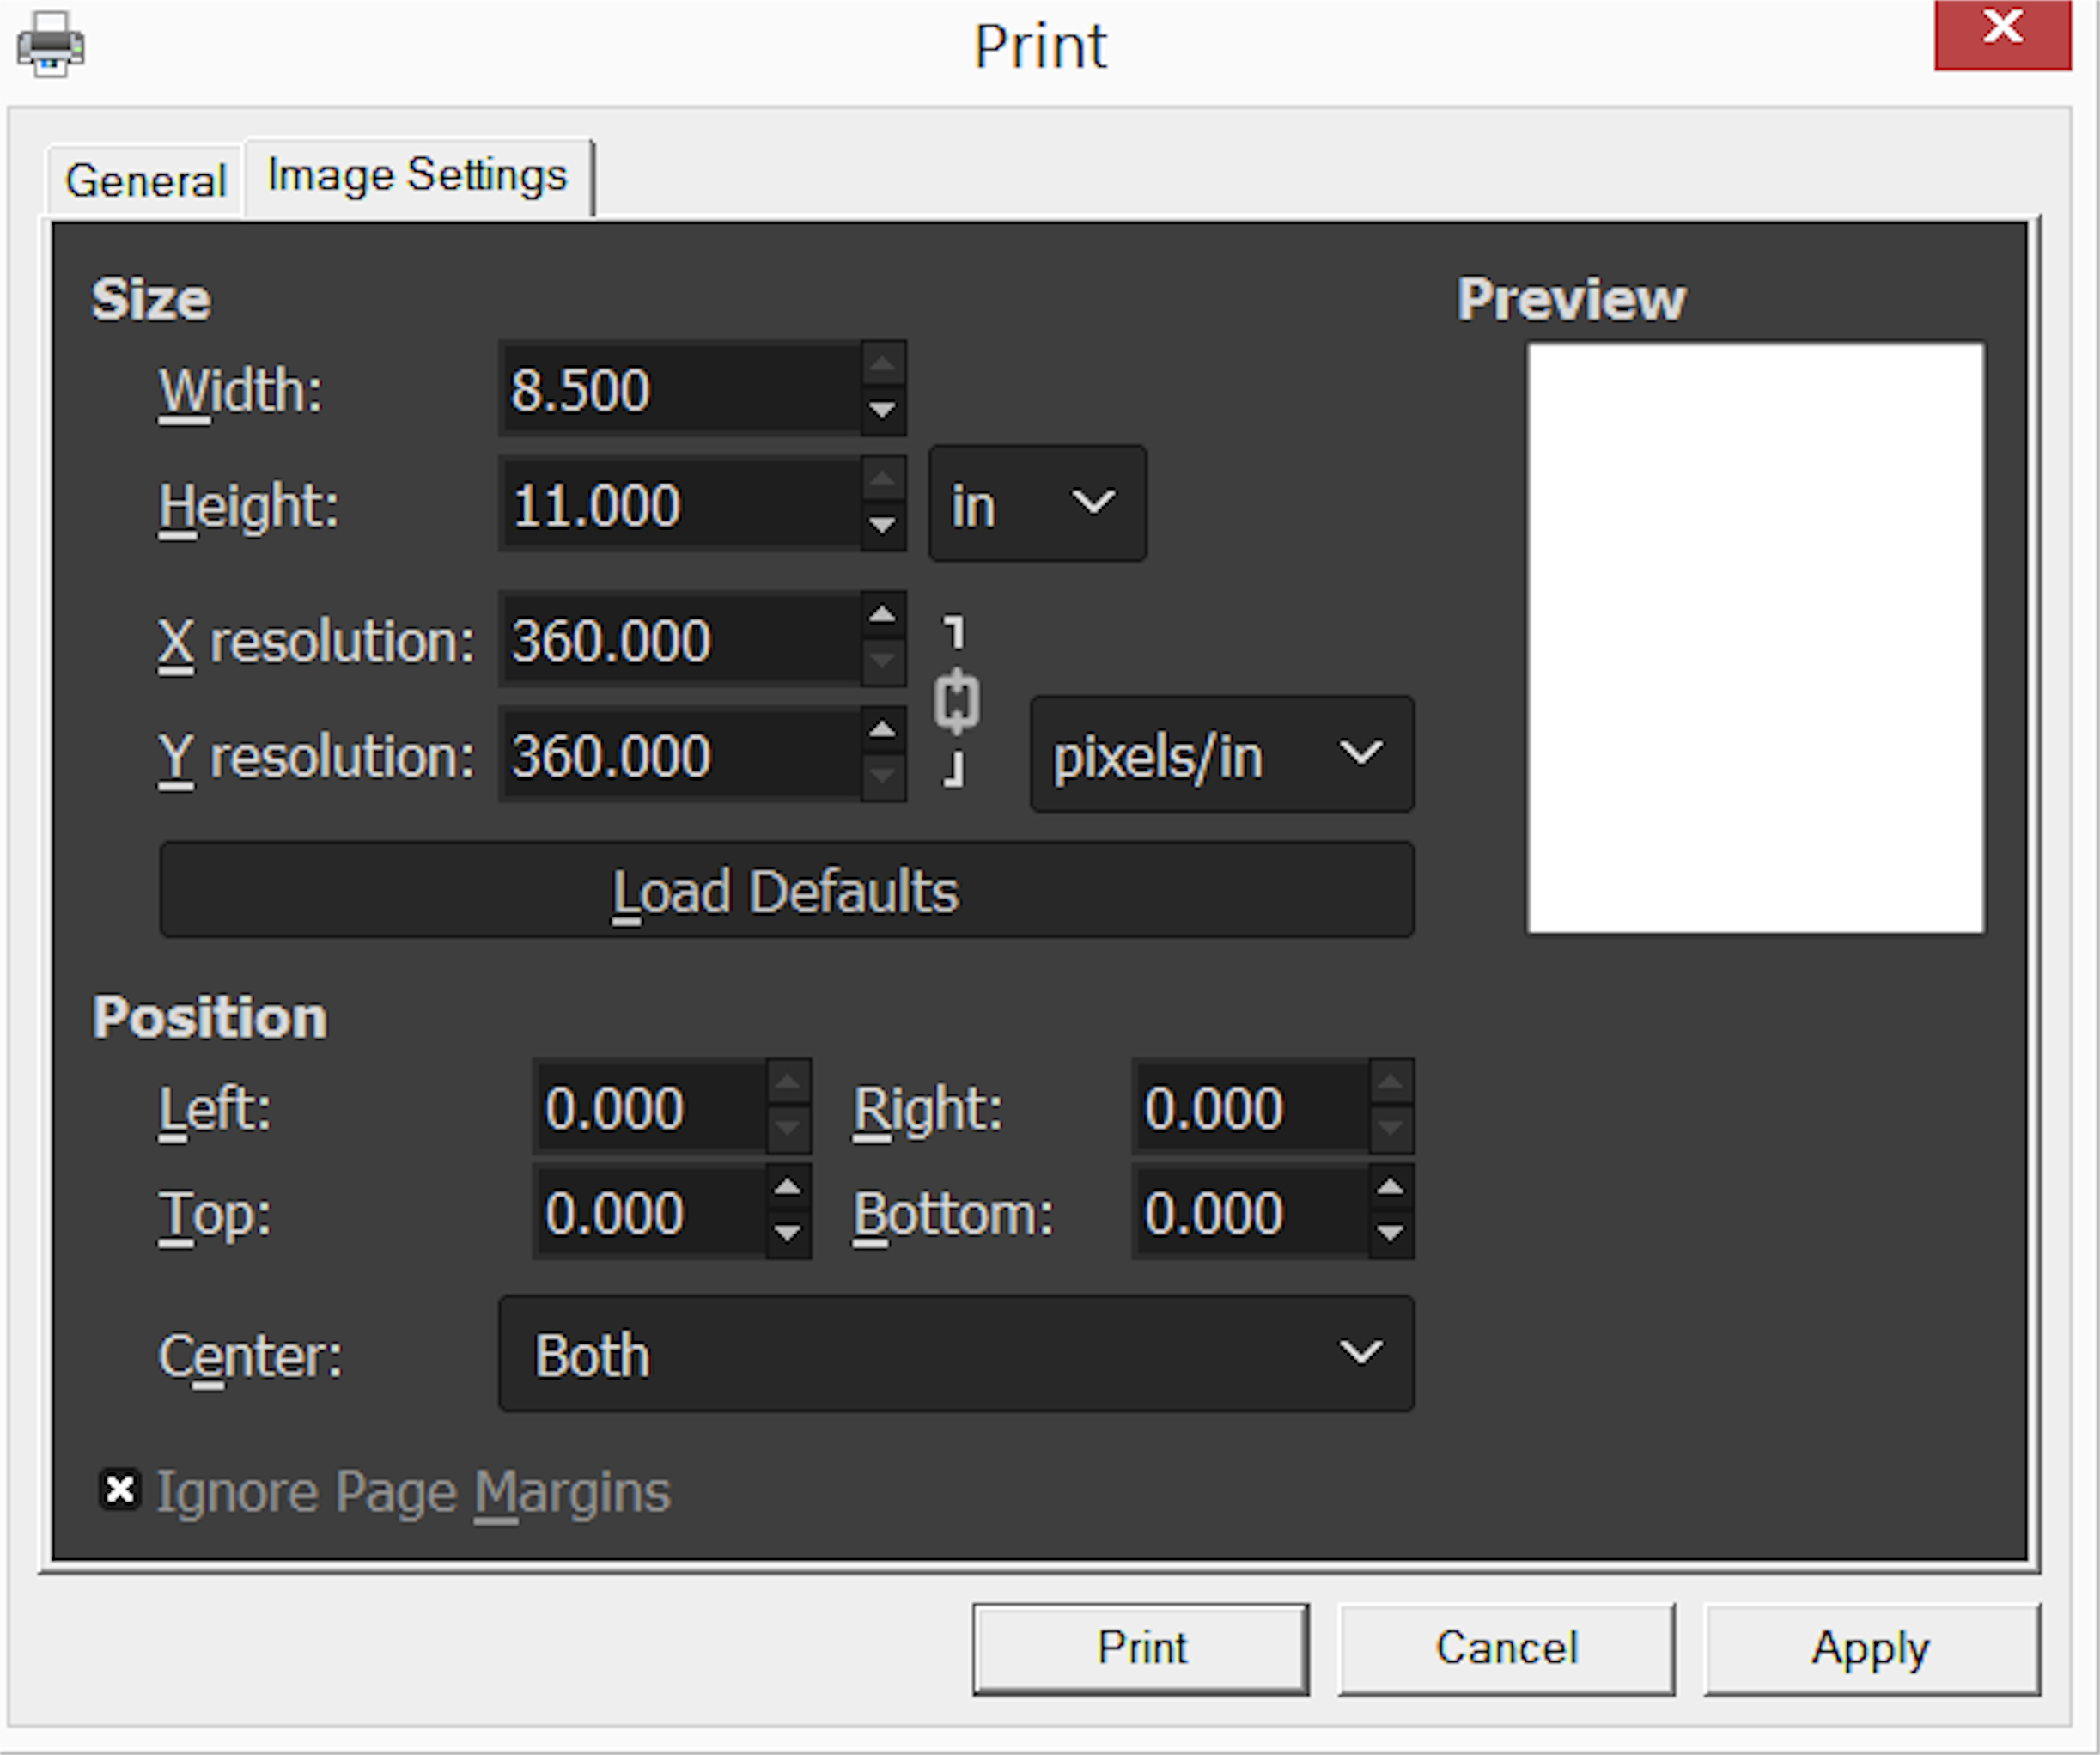 Image Settings to print from GIMP without margins